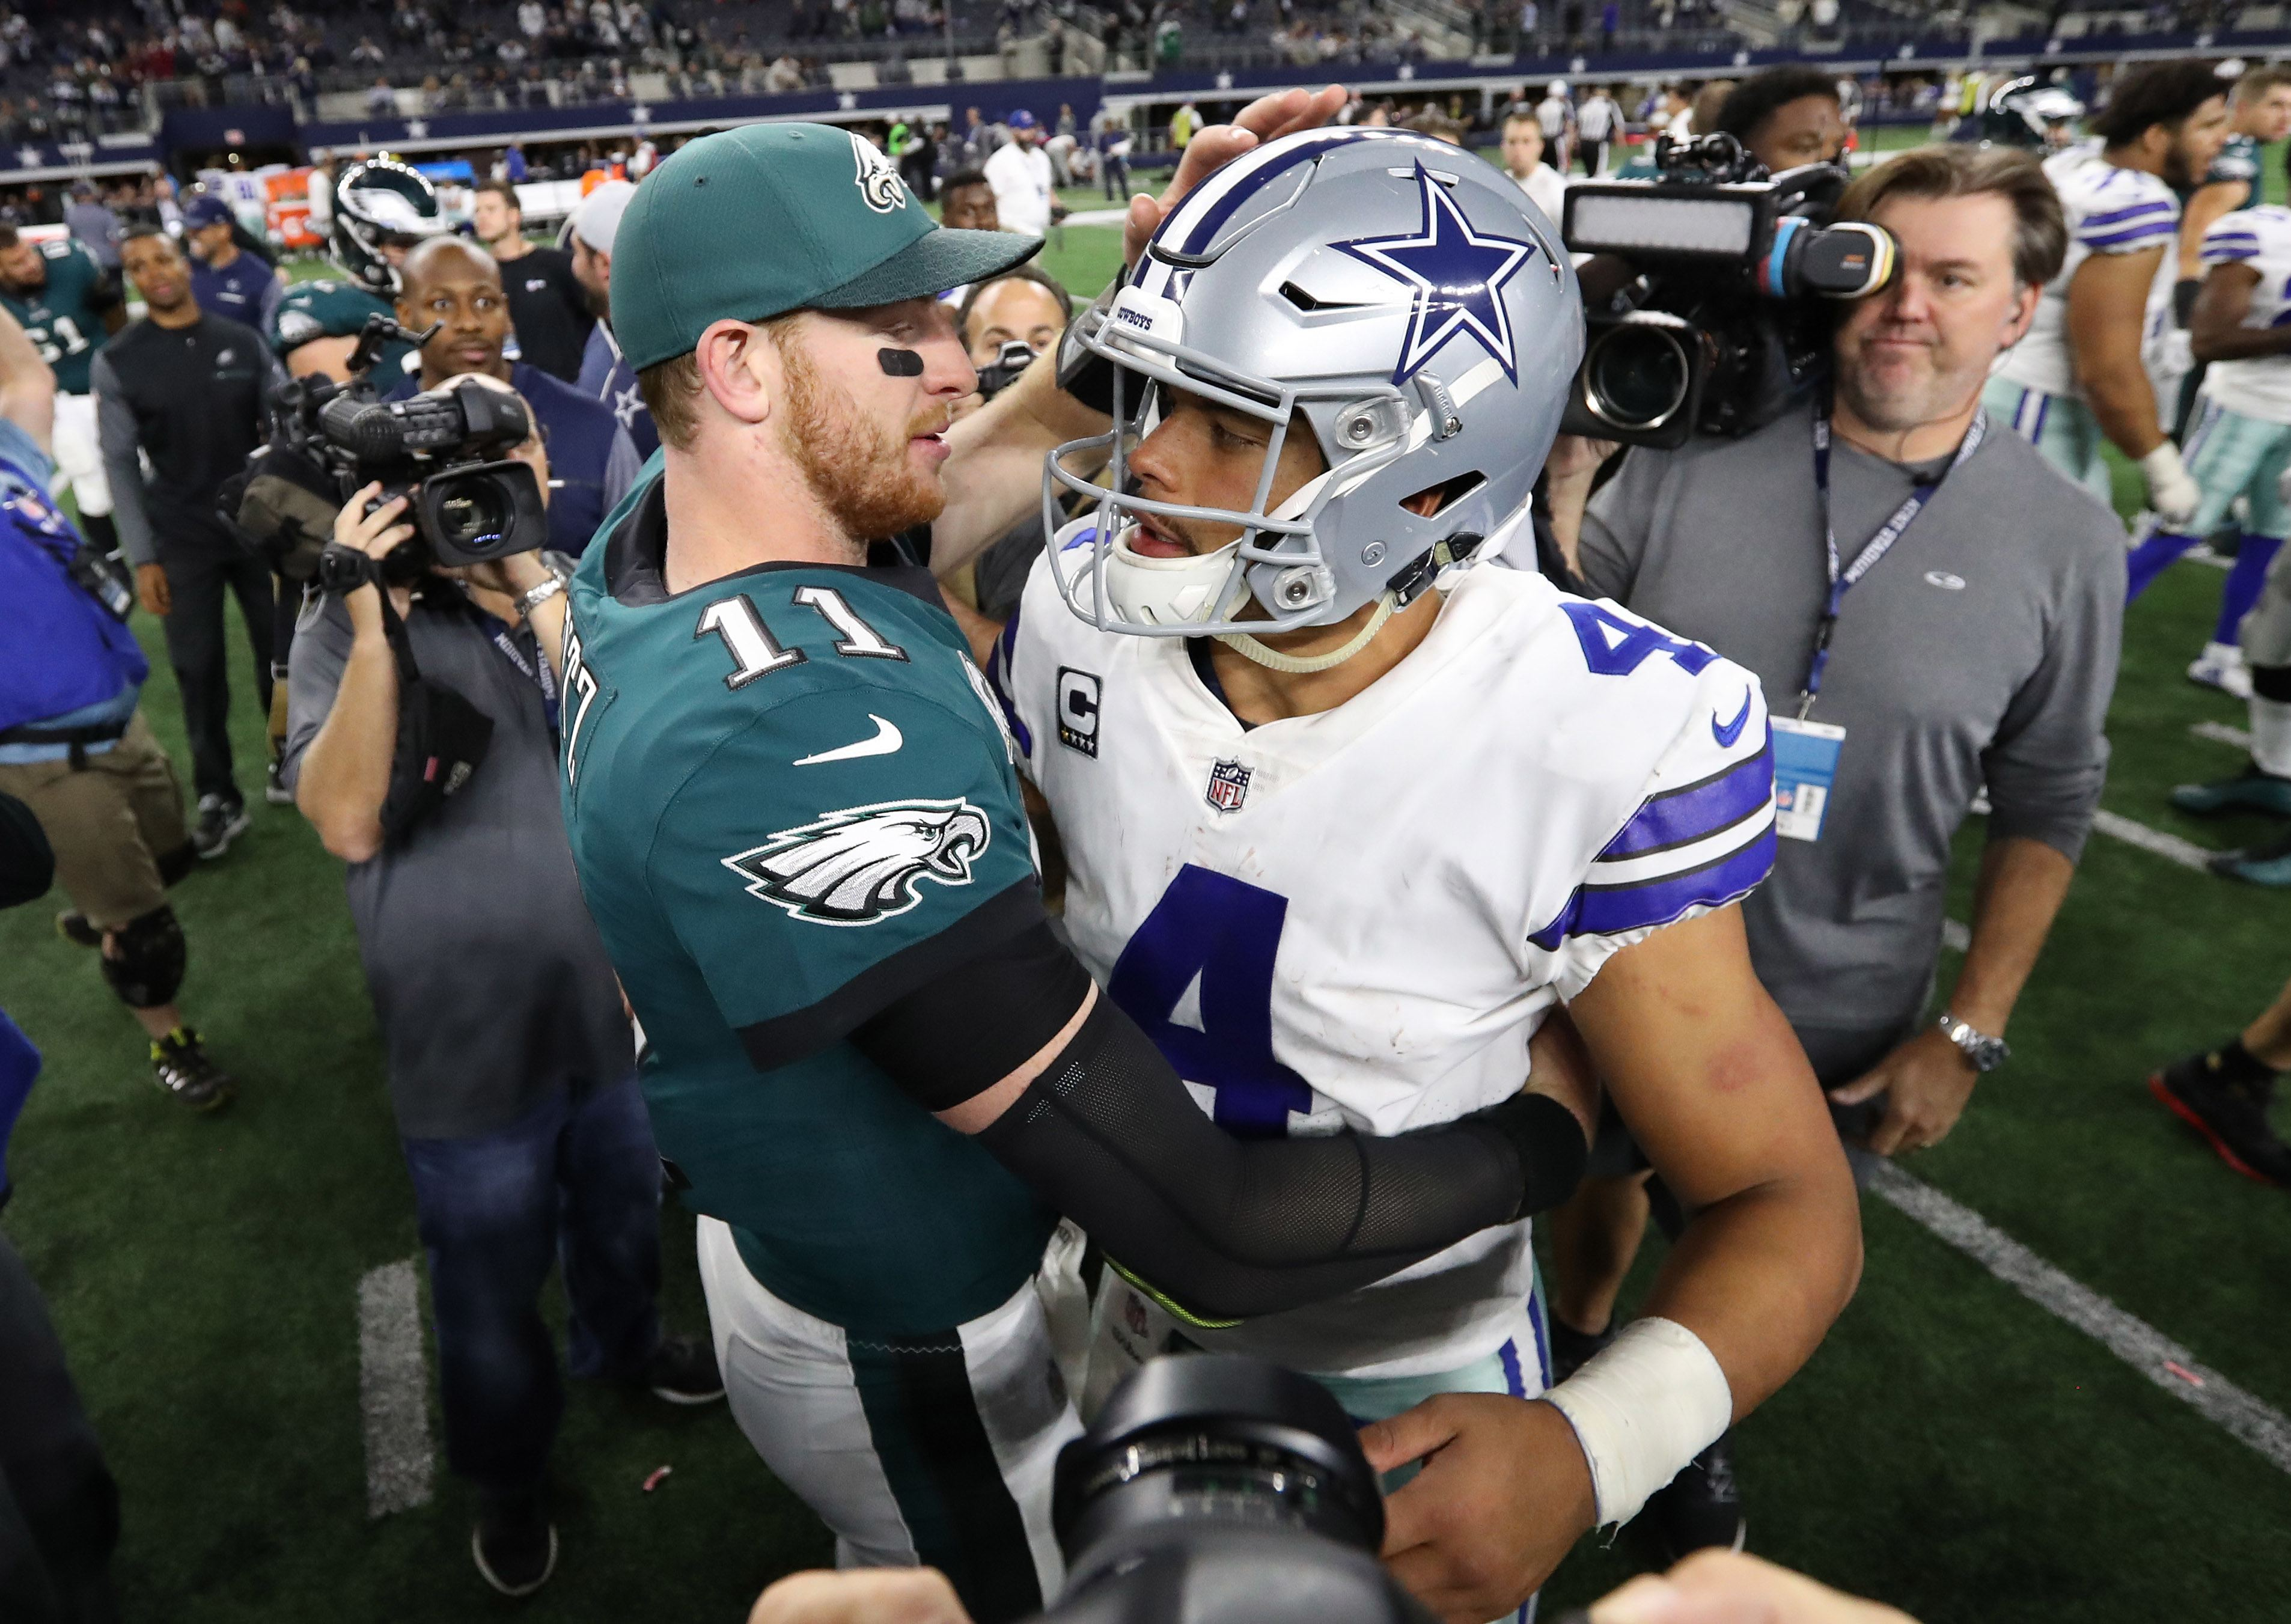 Prescott vs. Wentz, the Meaningless Debate Continues